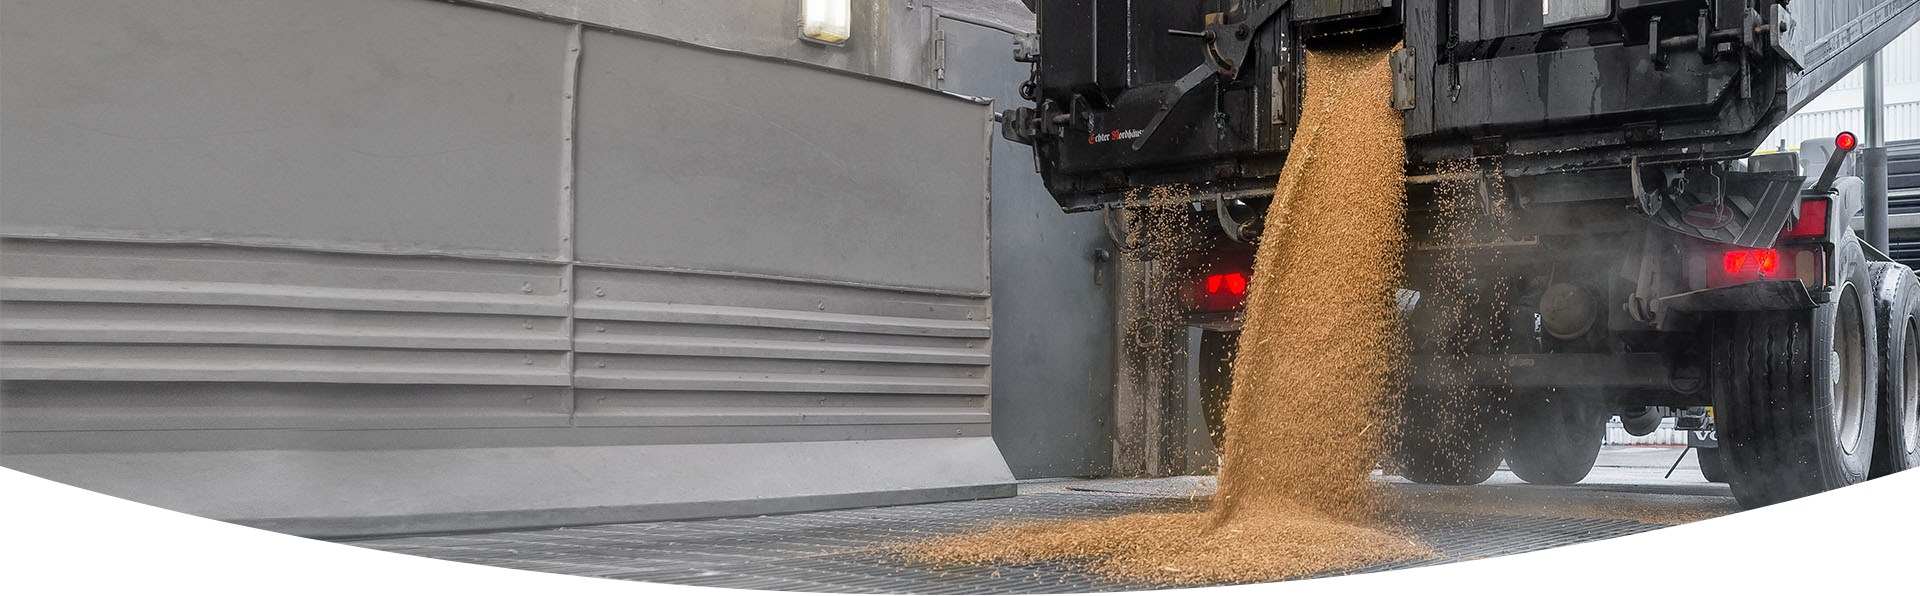 Truck trailer from which wheat is just running into a grain gutter.